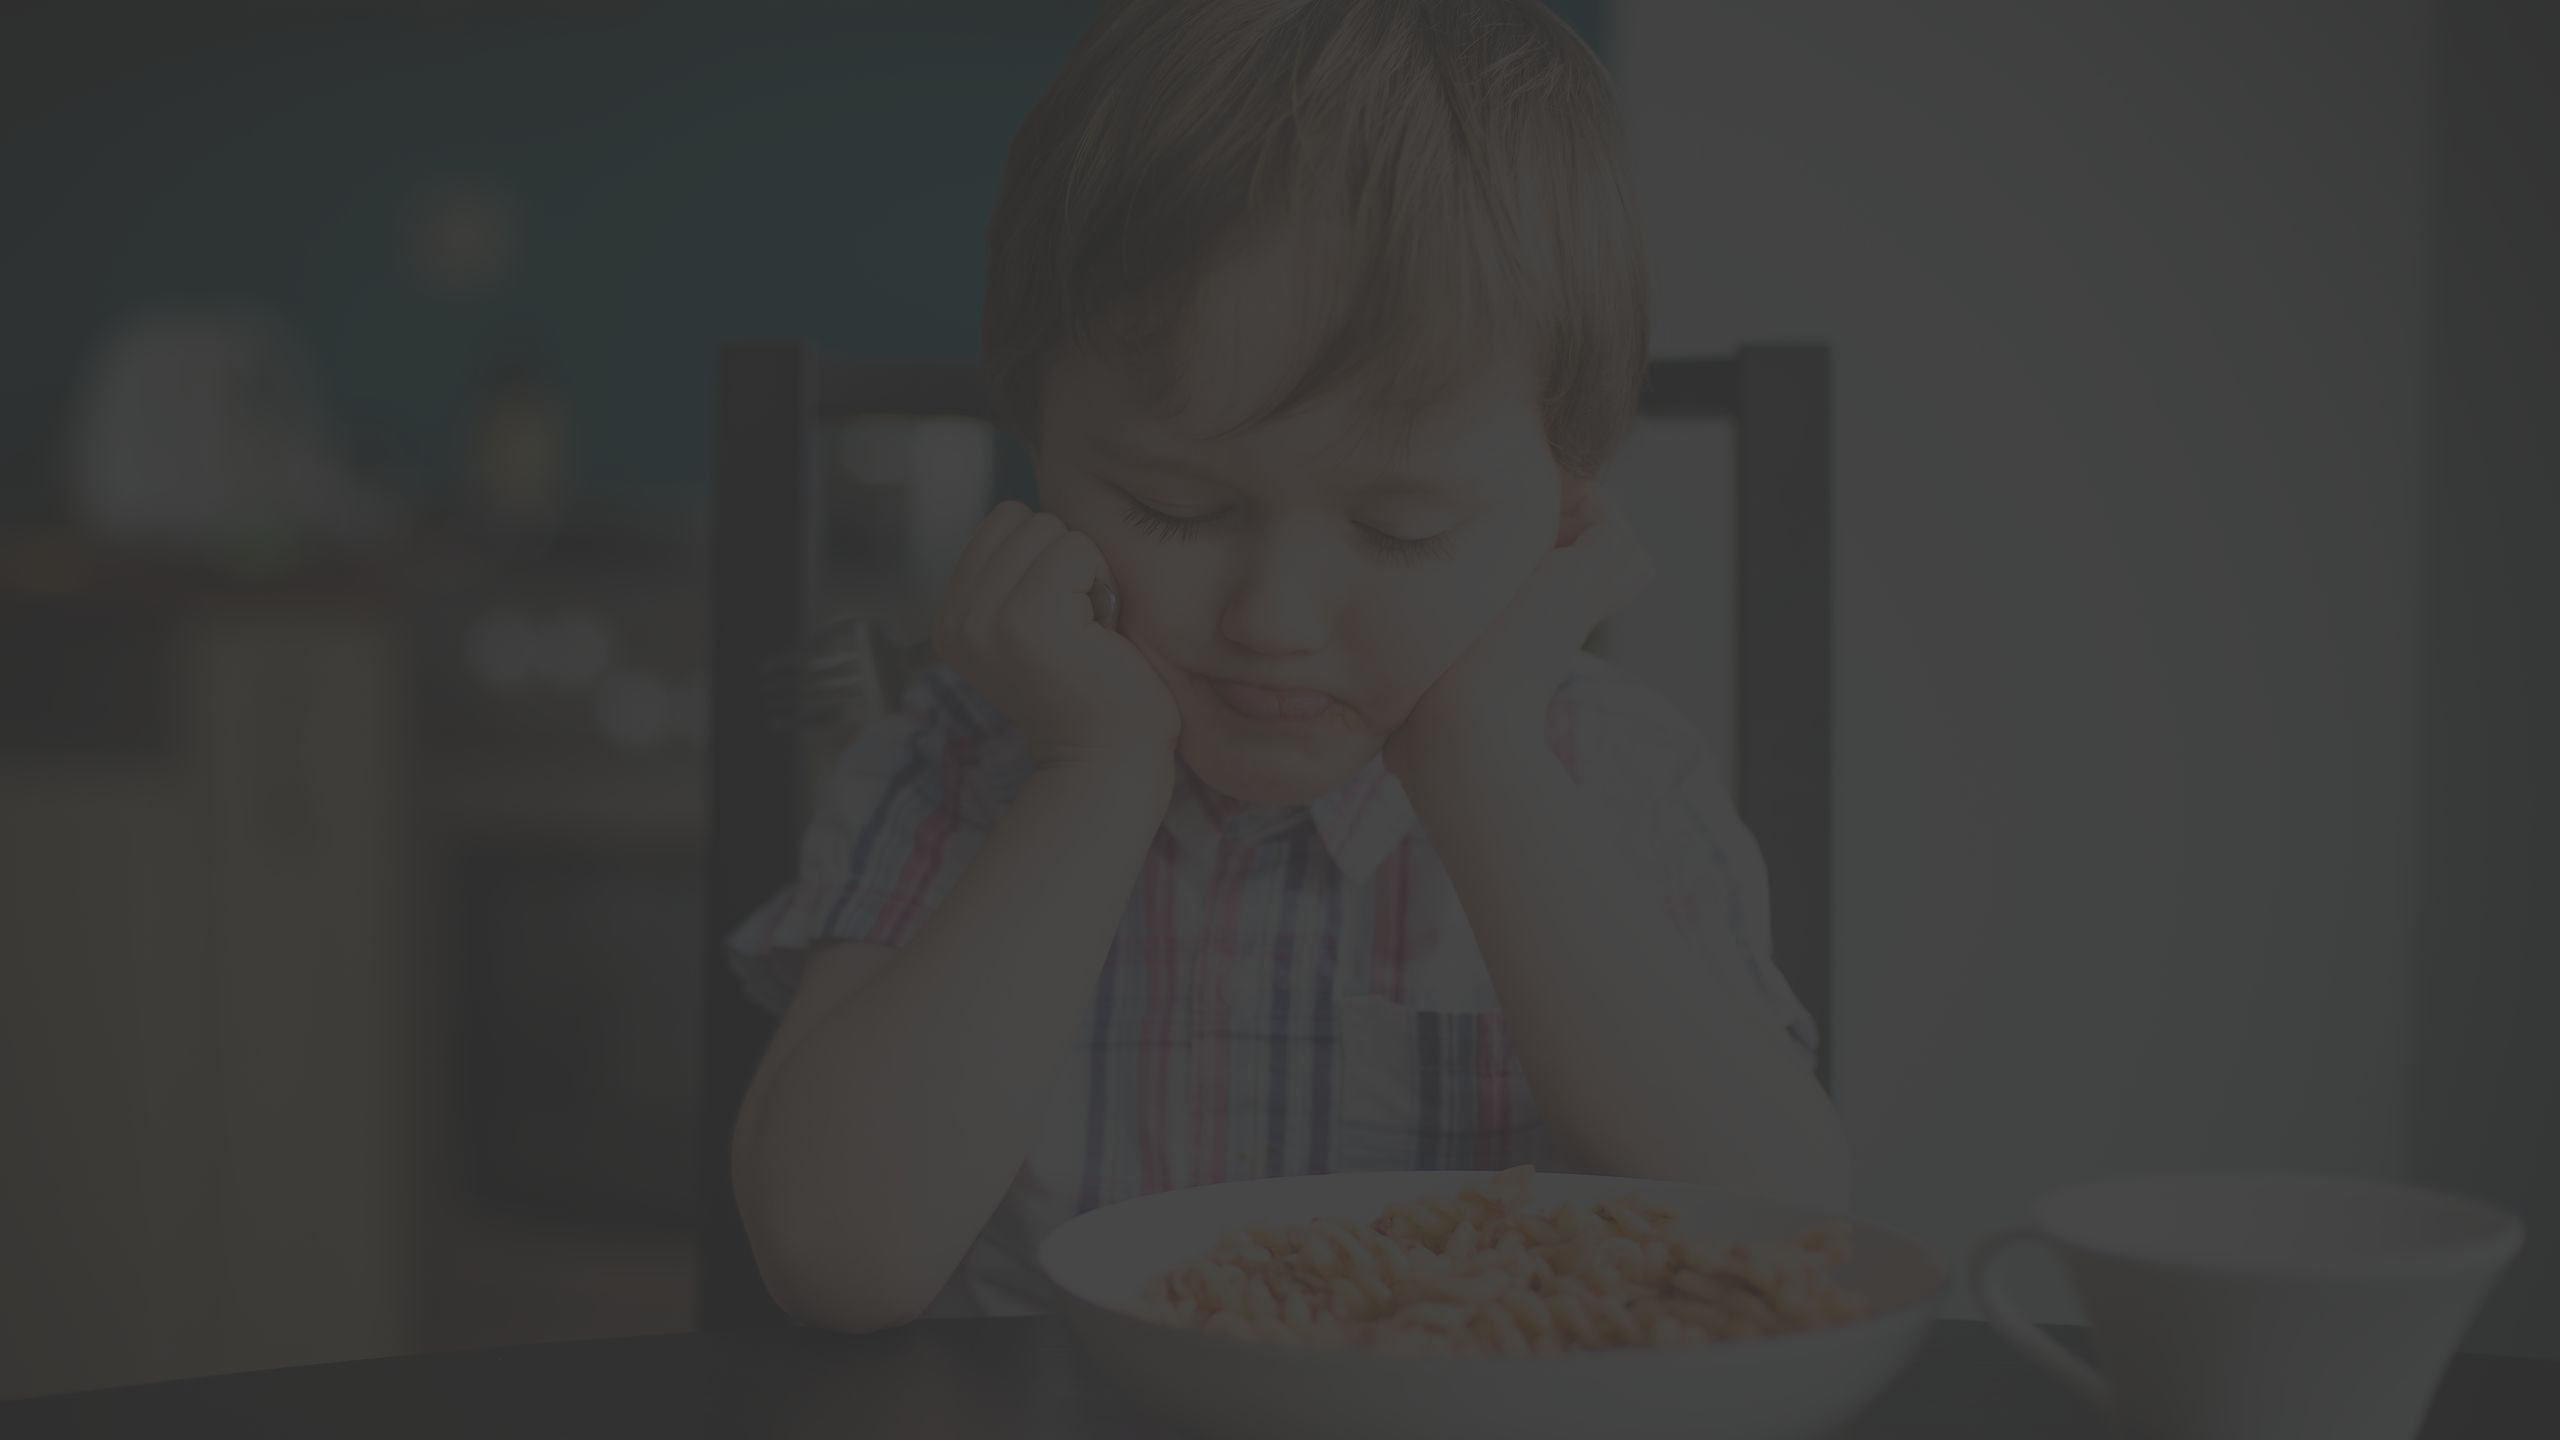 Food Aversion in Children with Autism